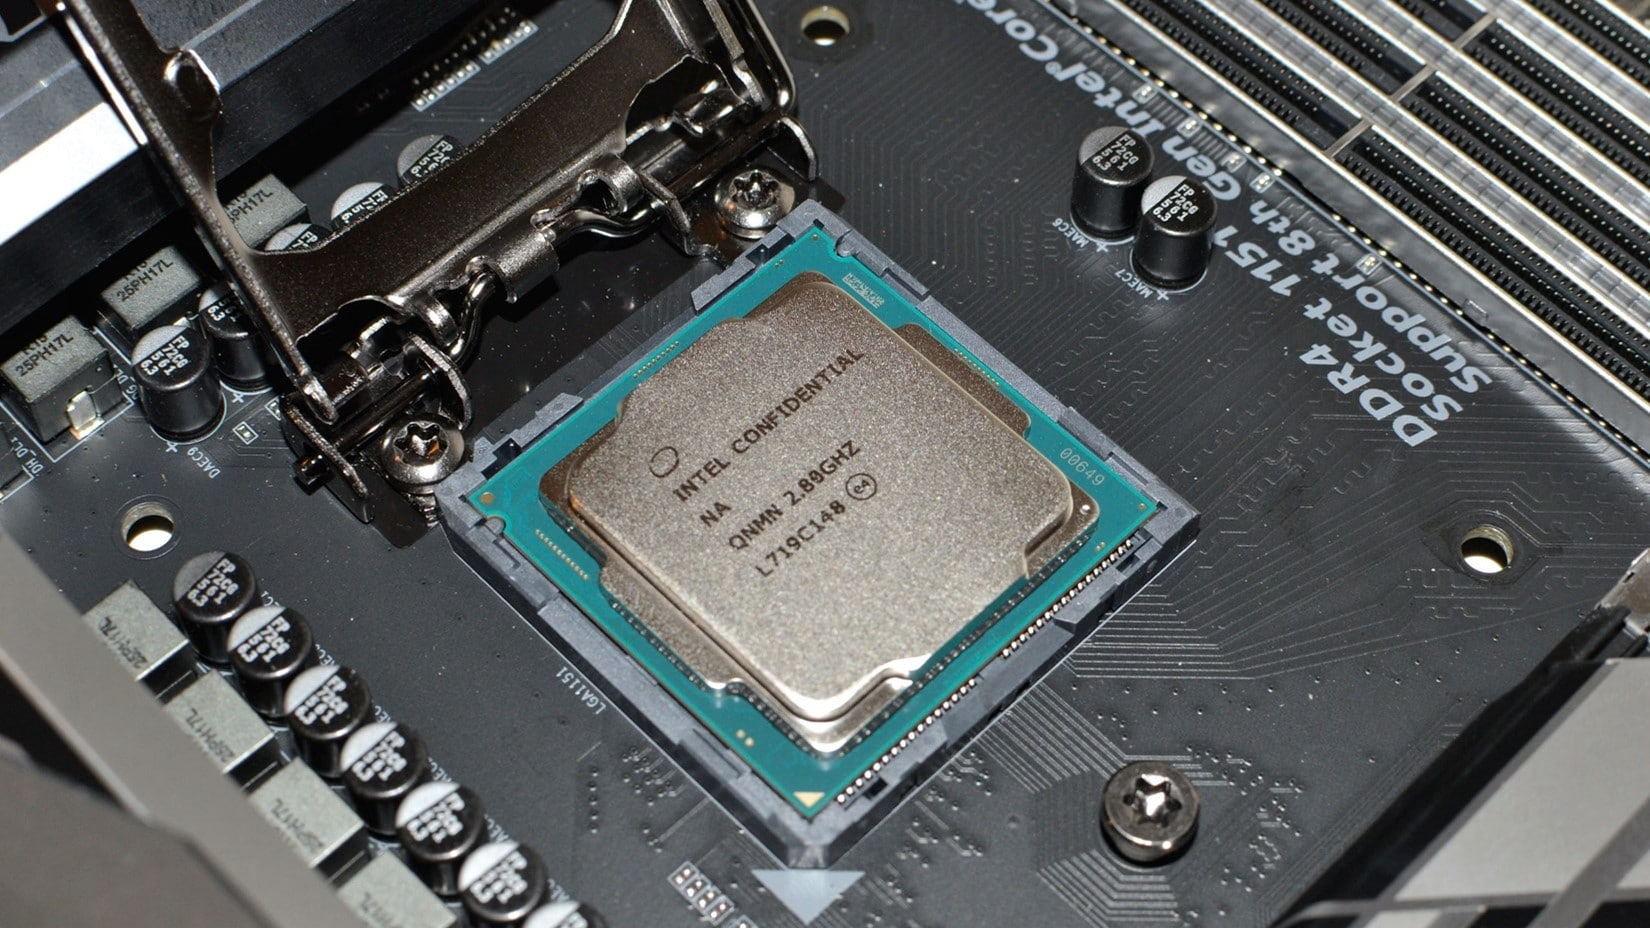 Intel and AMD's old Top-of-the-Line CPUs are on Sale